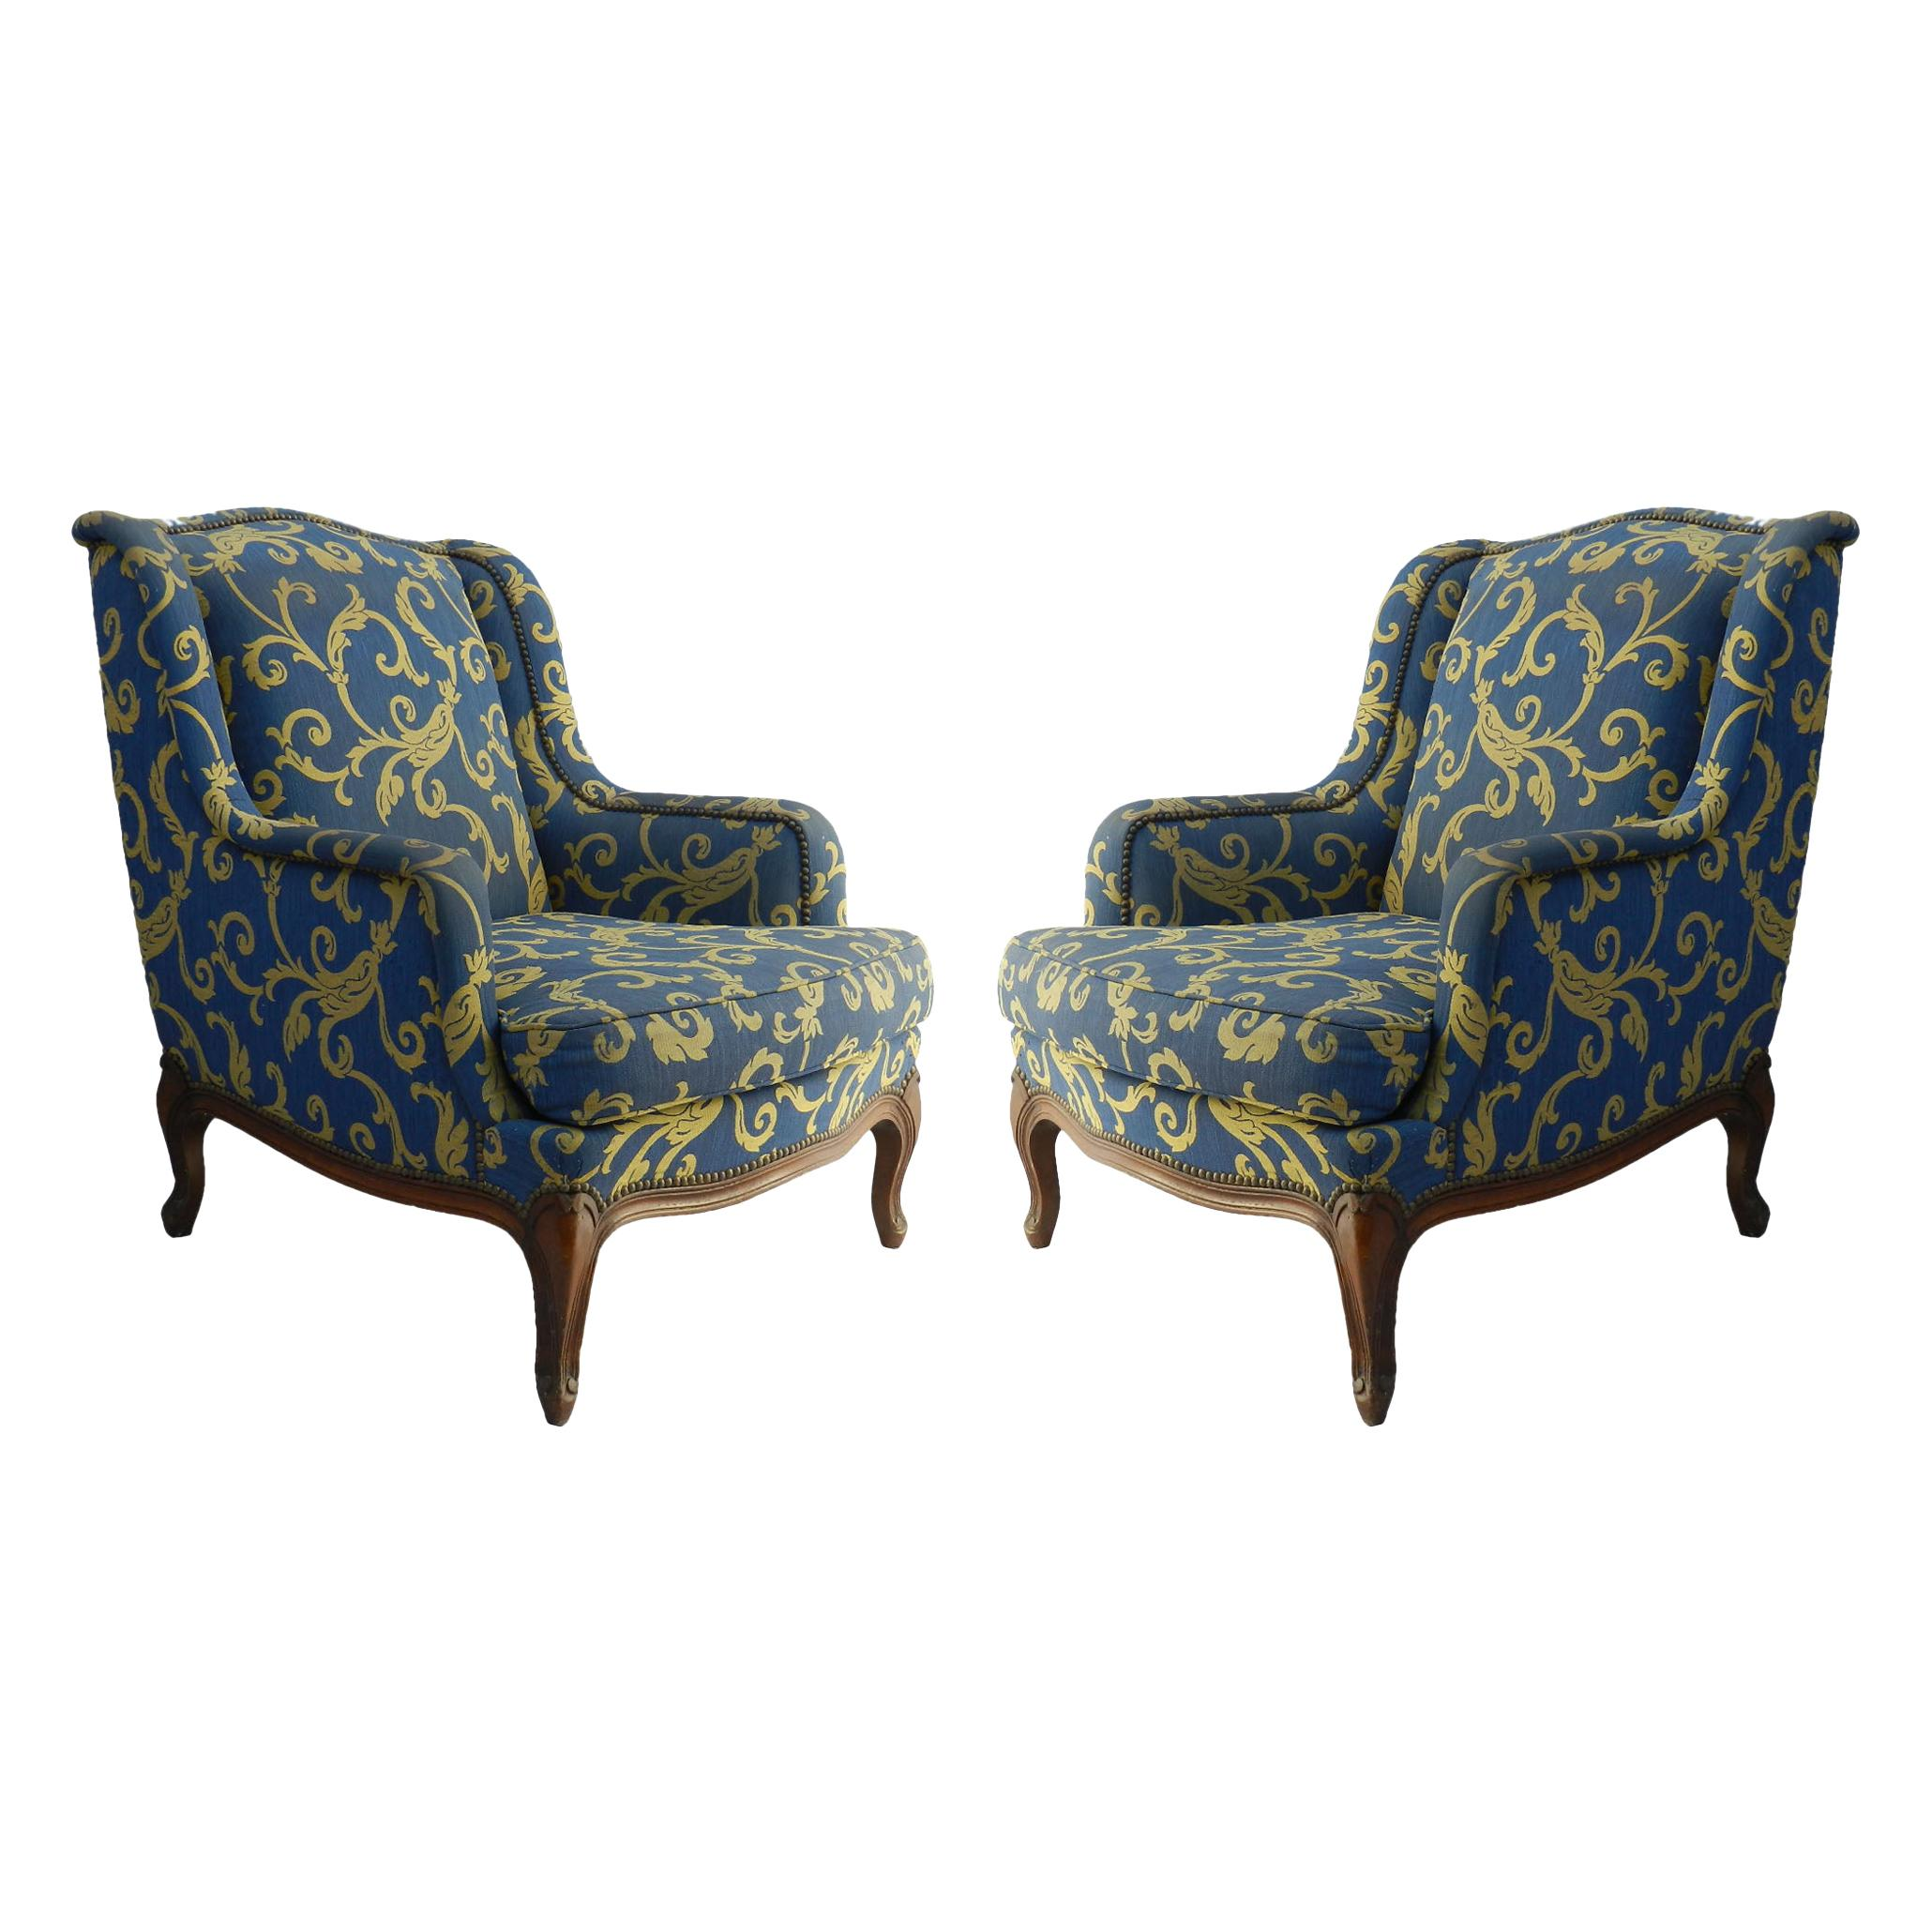 Pair of Louis XV Revival Armchairs French Early 20th Century to Recover